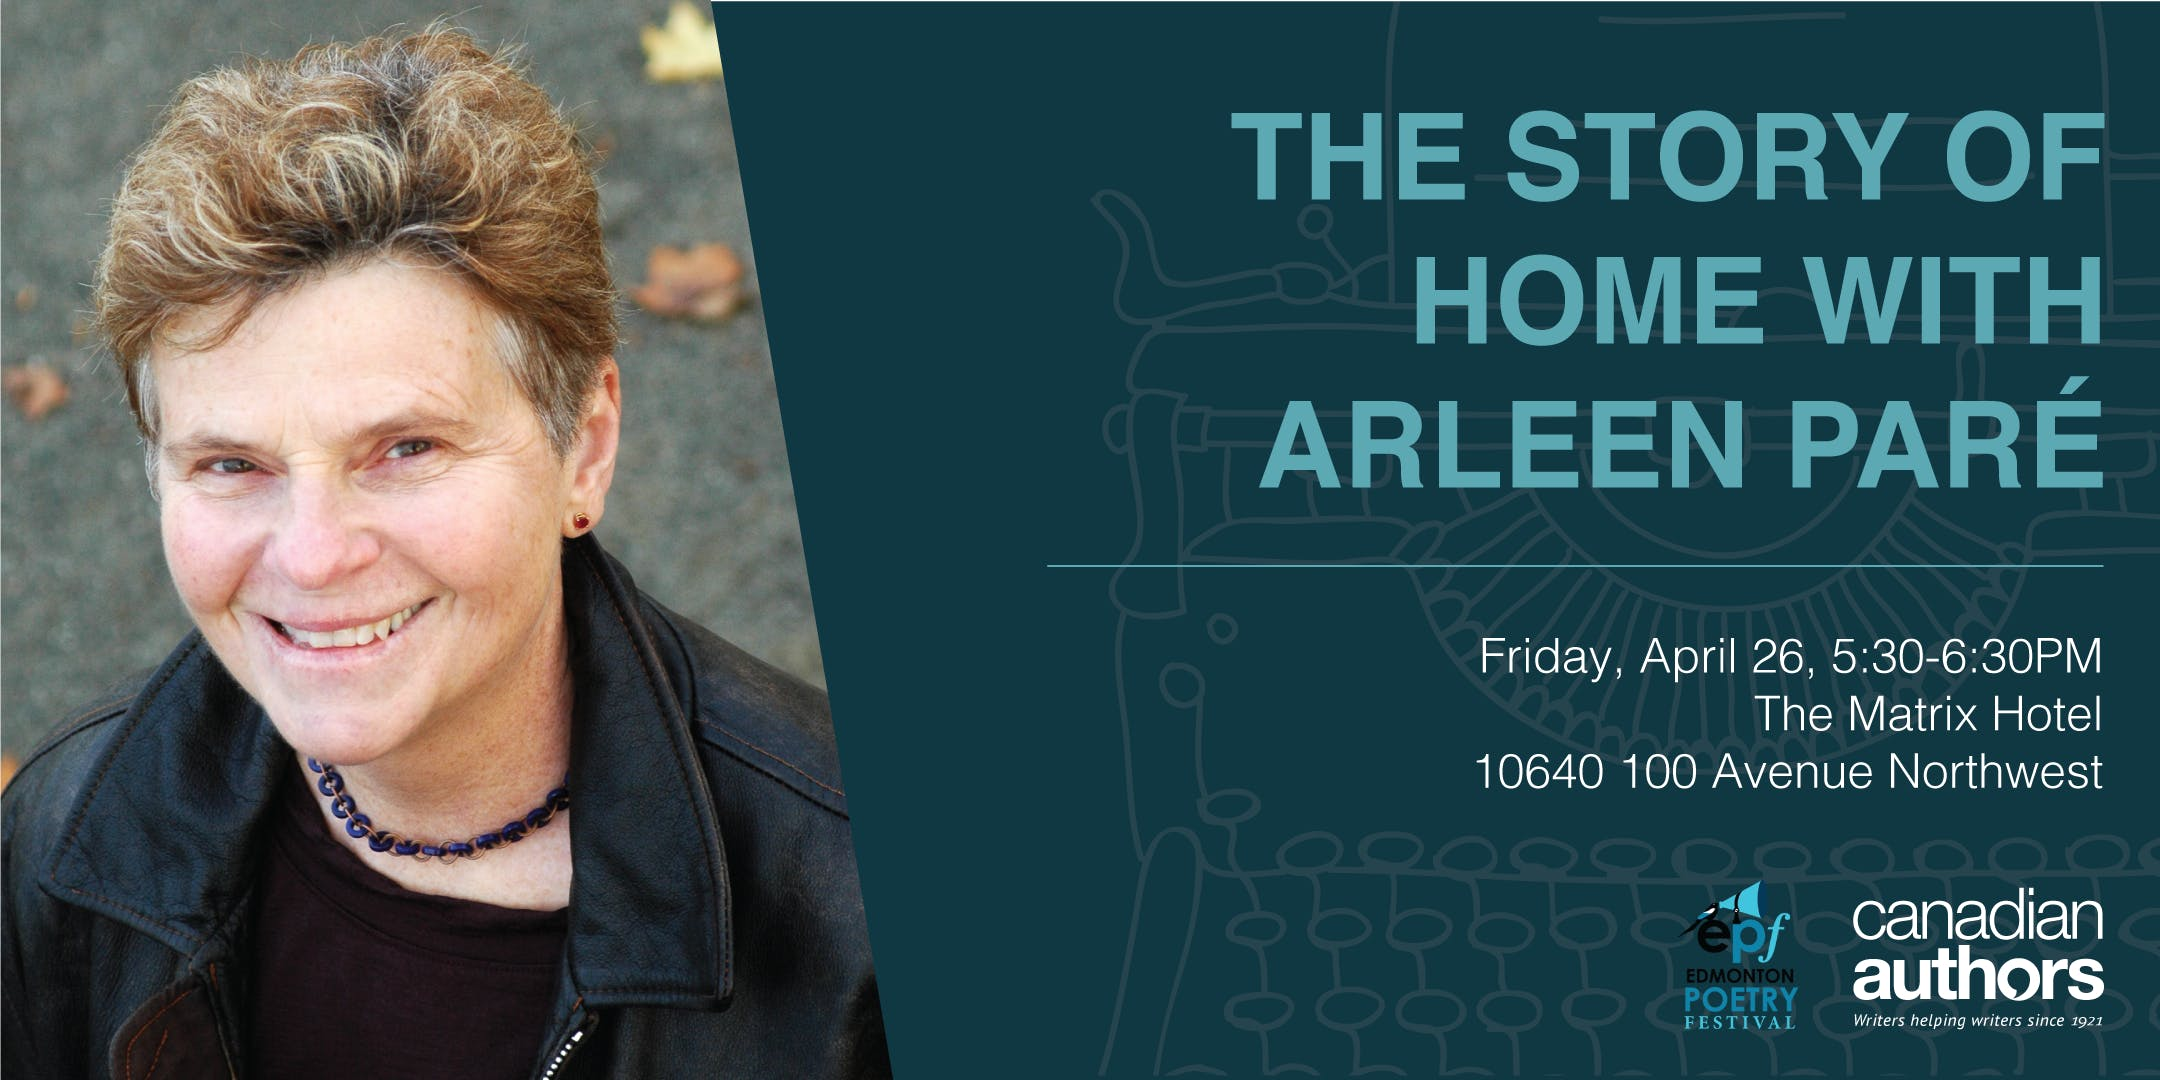 The Story of Home with Arleen Pare